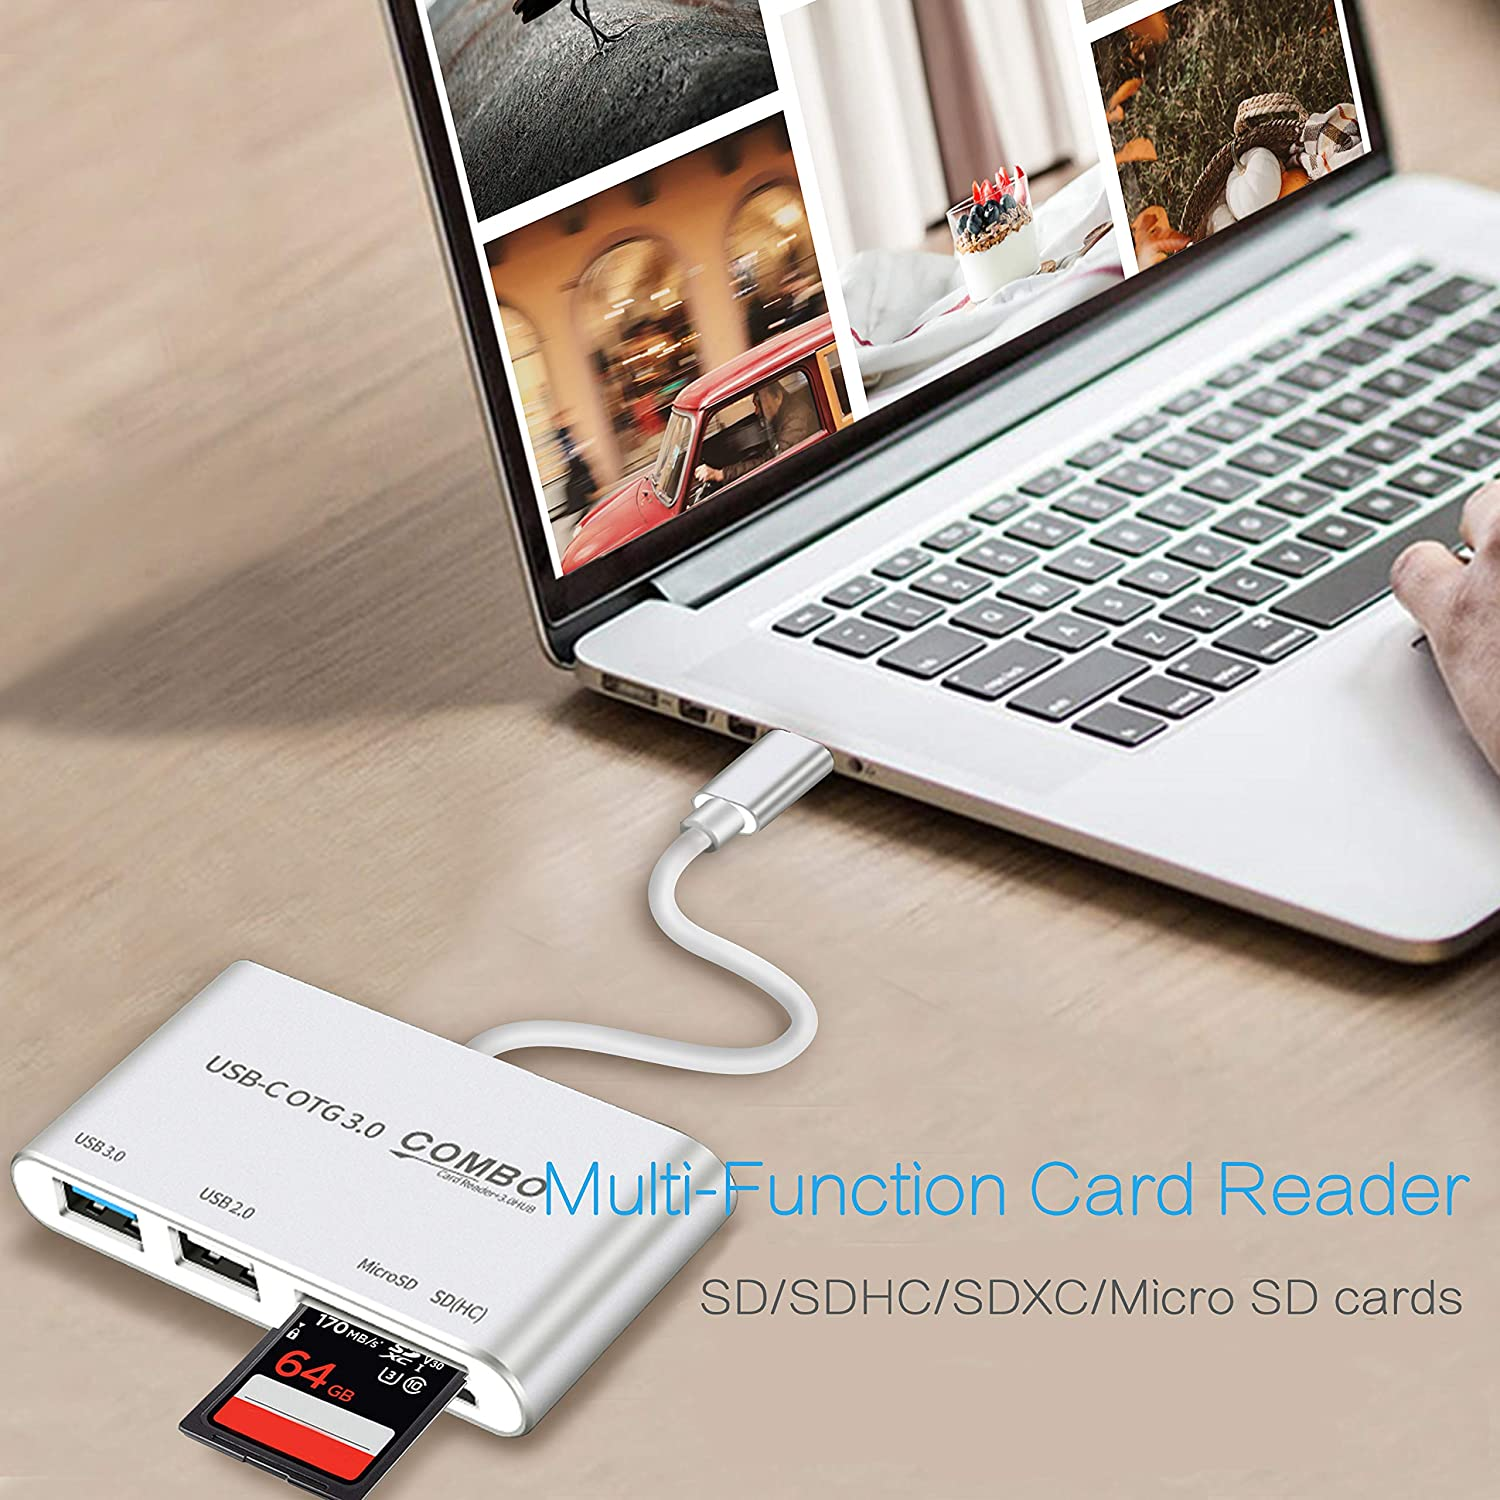 USB 2.0//3.0 Port and Micro USB Charging Port Compatible with Surface go USB Card Reader SD 5 in 1 OTG USB C Card Reader by Gecen Macbook Air//pro USB C Adapter Card Reader with SD//TF Card Slots